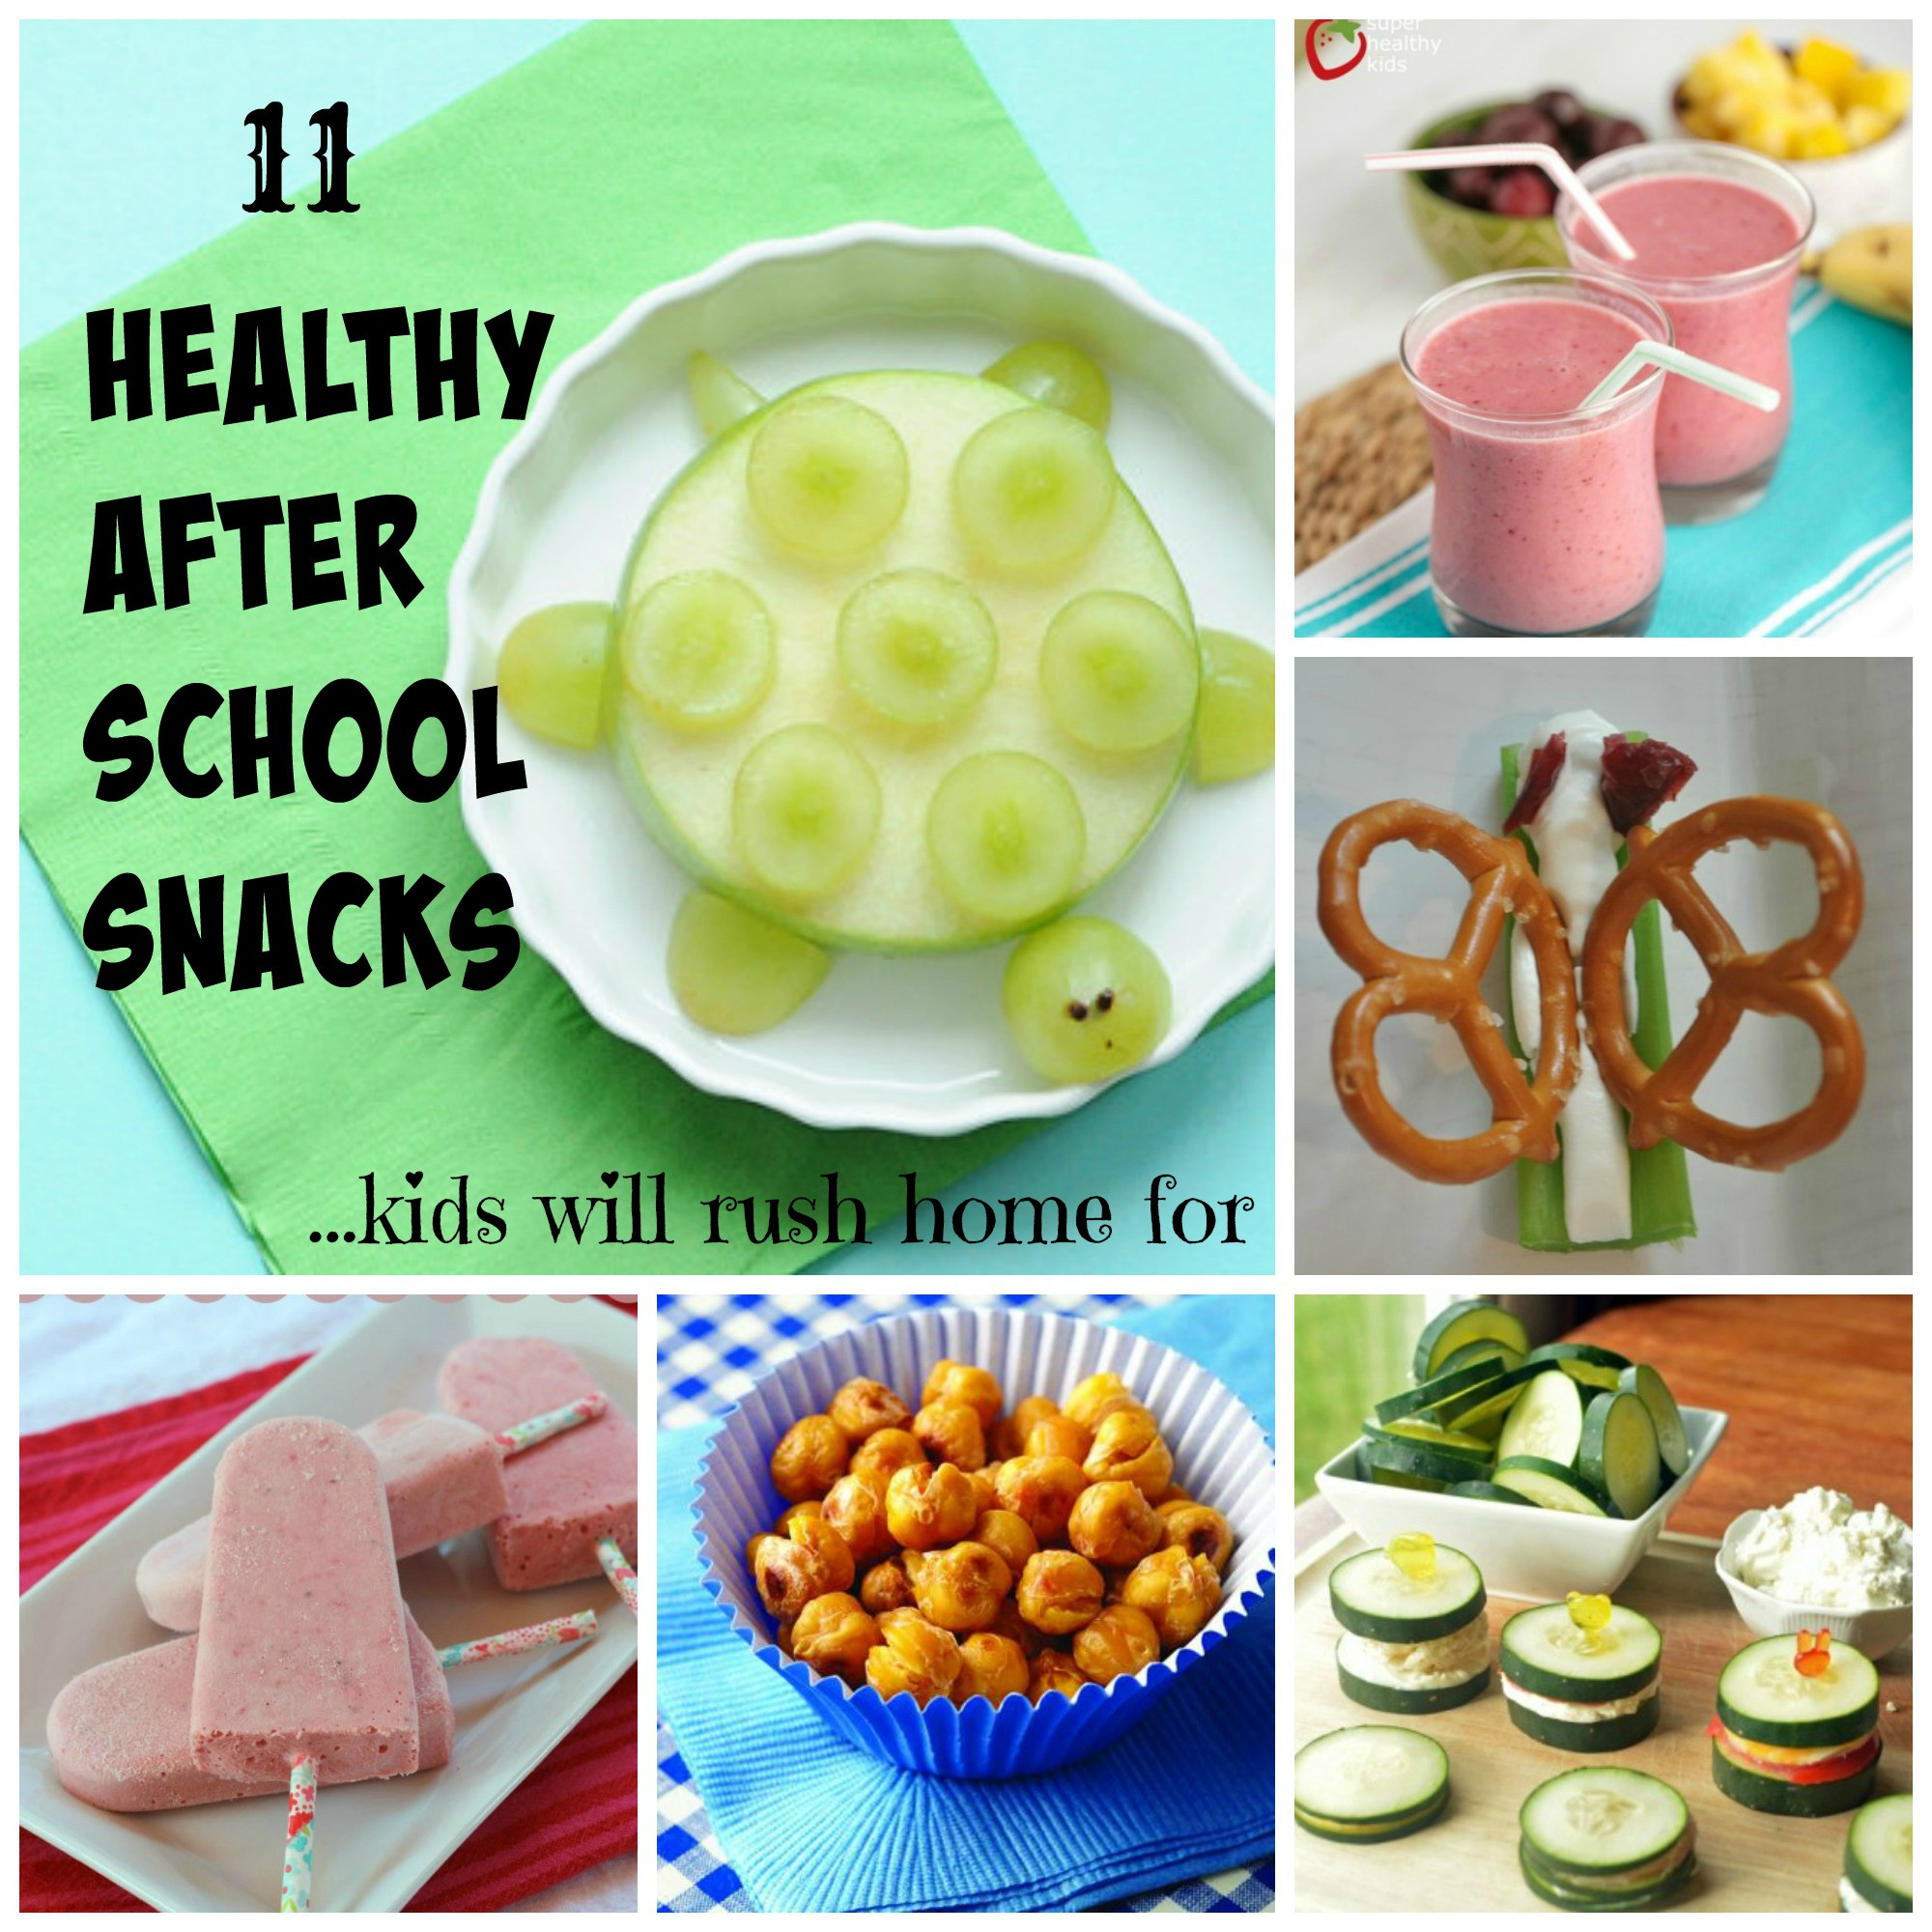 Healthy Snacks At Home  11 Healthy After School Snacks Kids Will Rush Home For